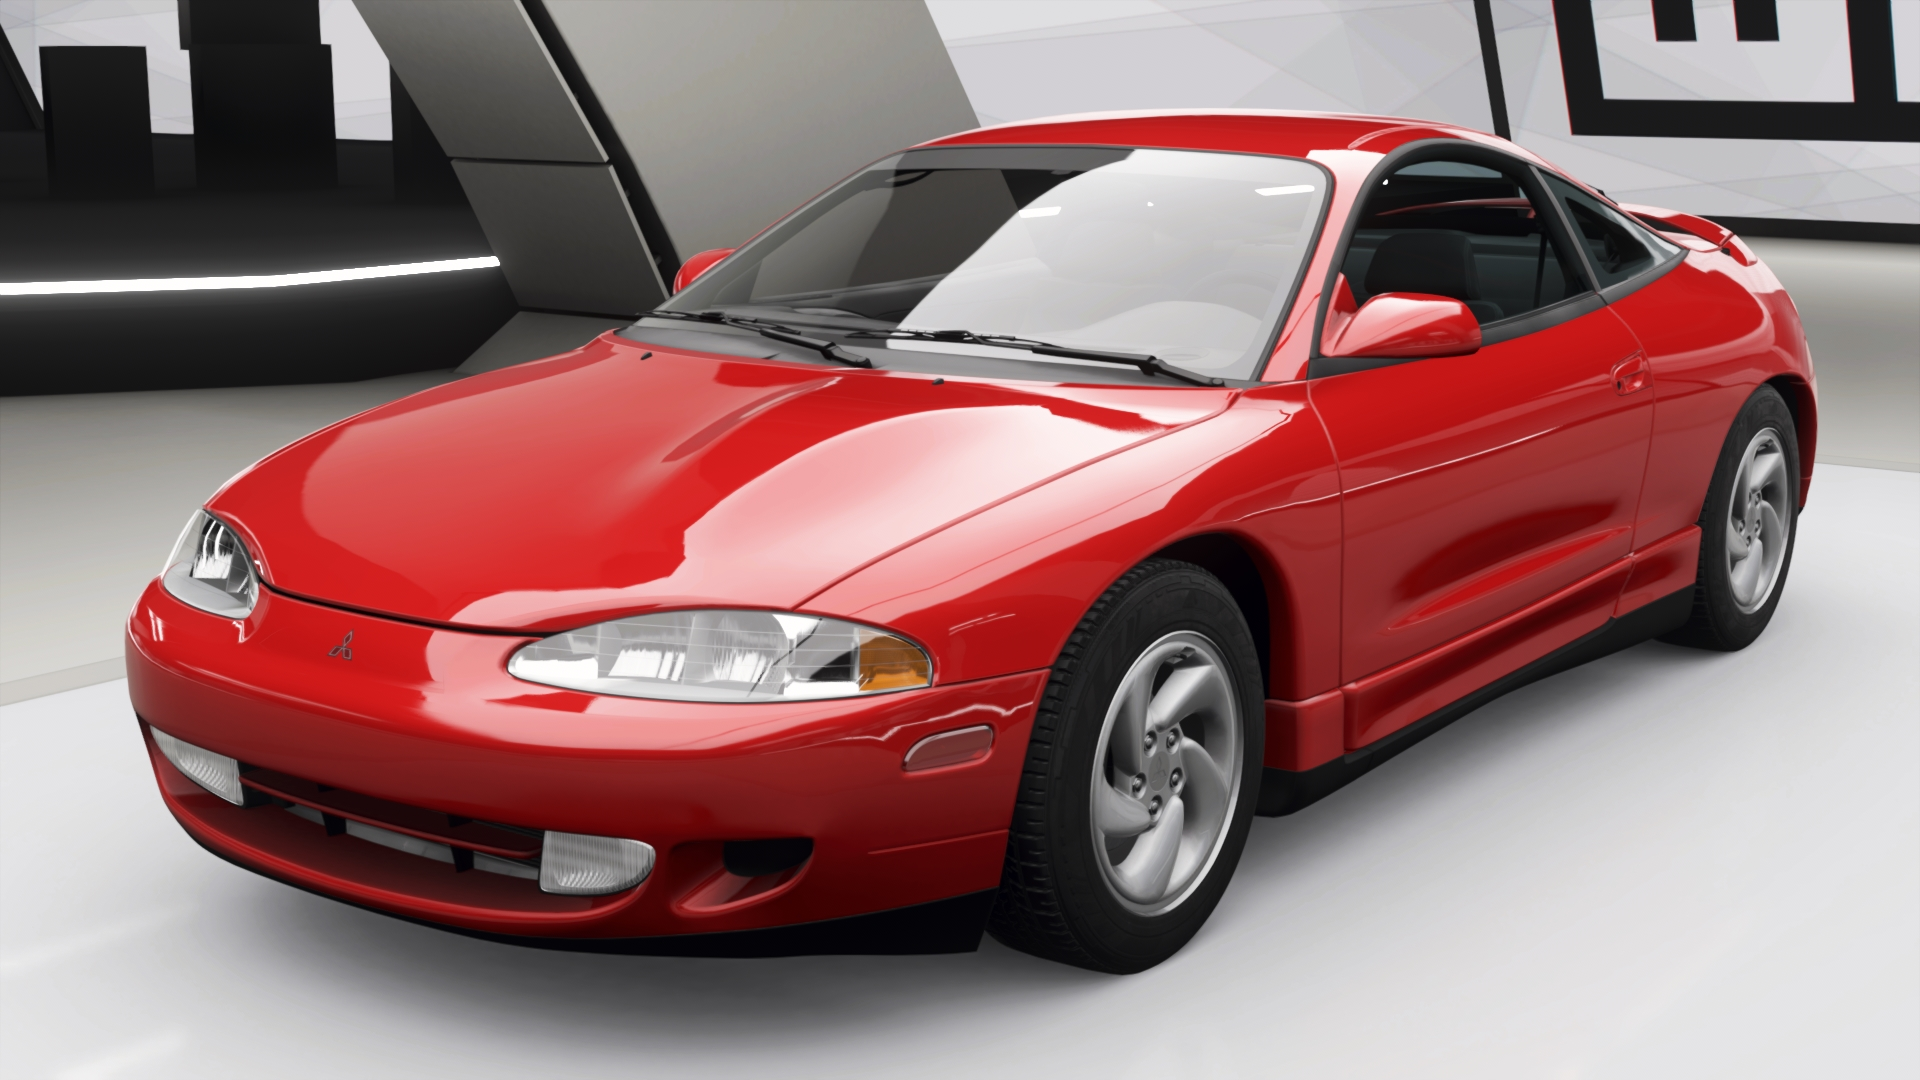 Mitsubishi Eclipse GSX | Forza Motorsport Wiki | FANDOM powered by Wikia